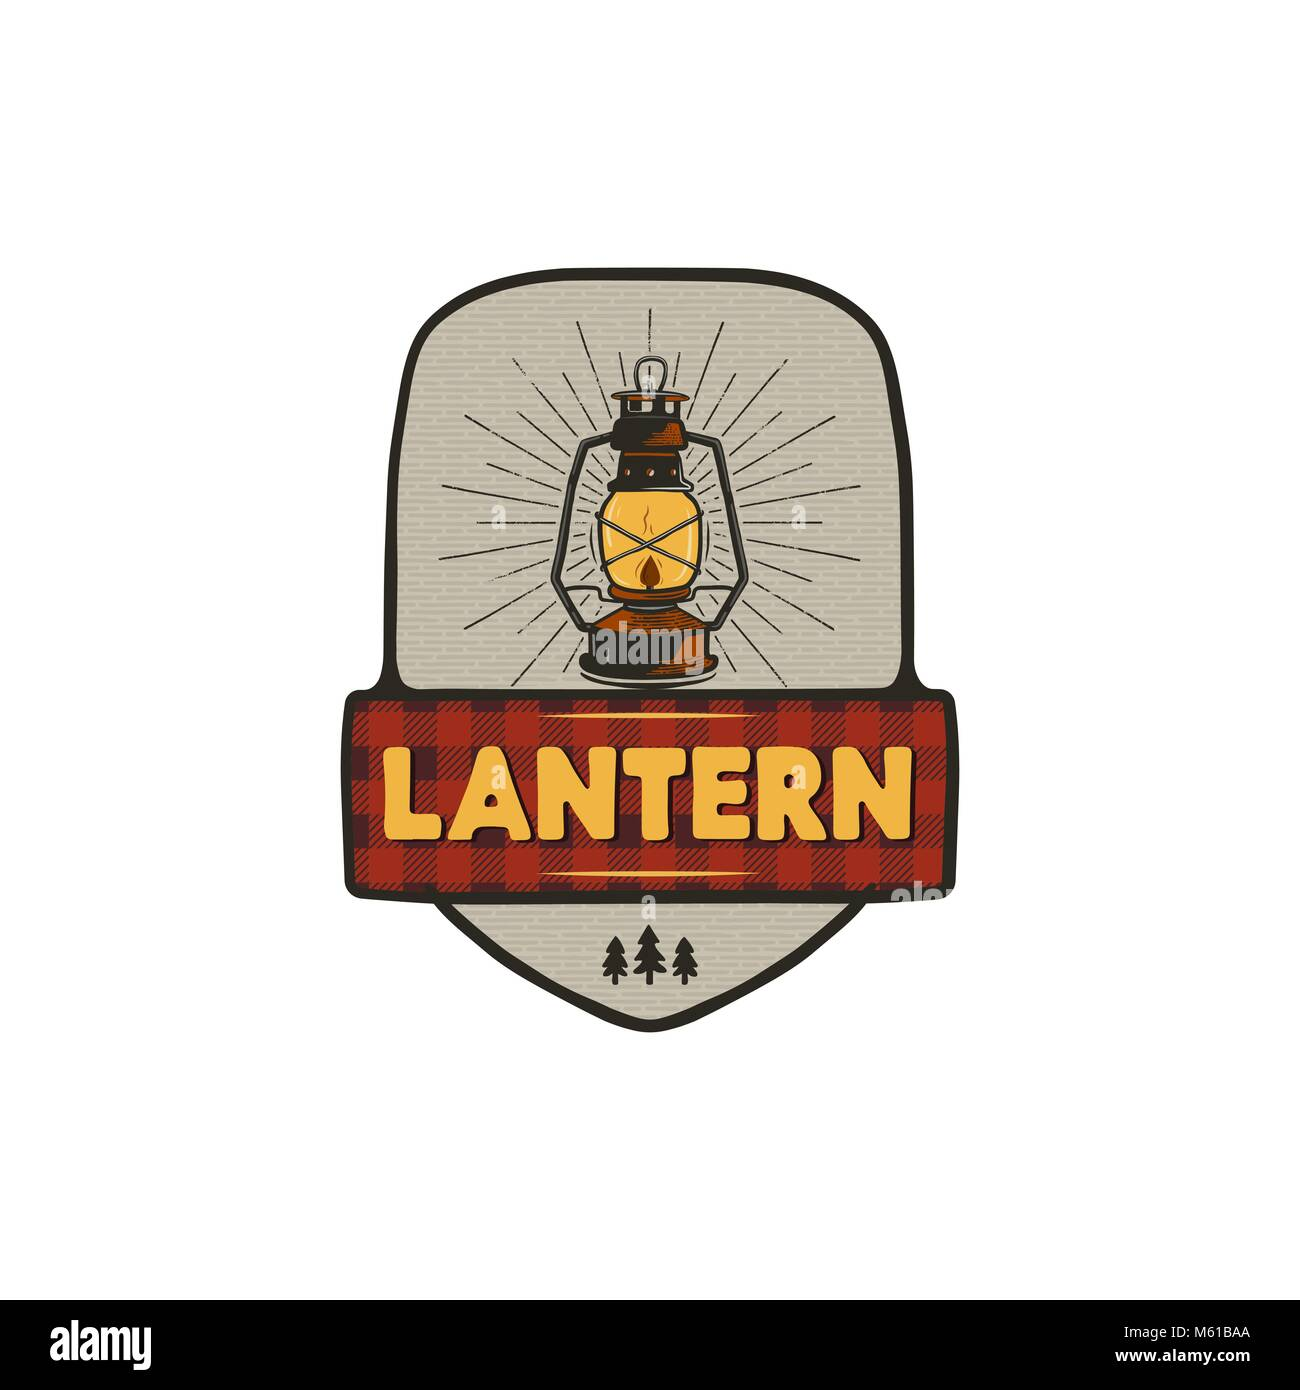 Vintage hand drawn camping logo with lantern. Retro style camping logo. Outdoor adventure badge design. Travel and - Stock Vector